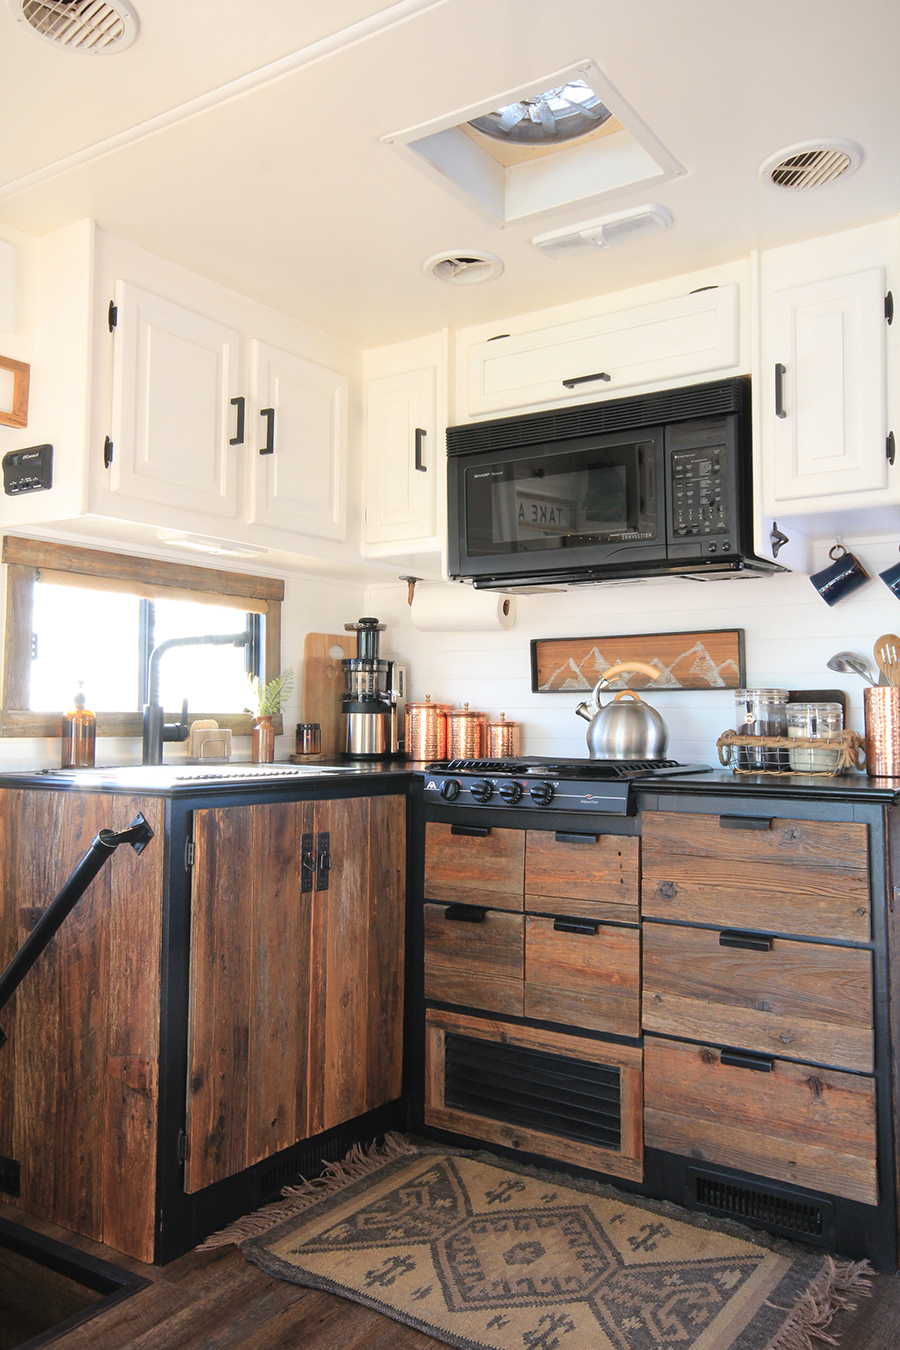 Updating our RV with Reclaimed Wood Kitchen Cabinets